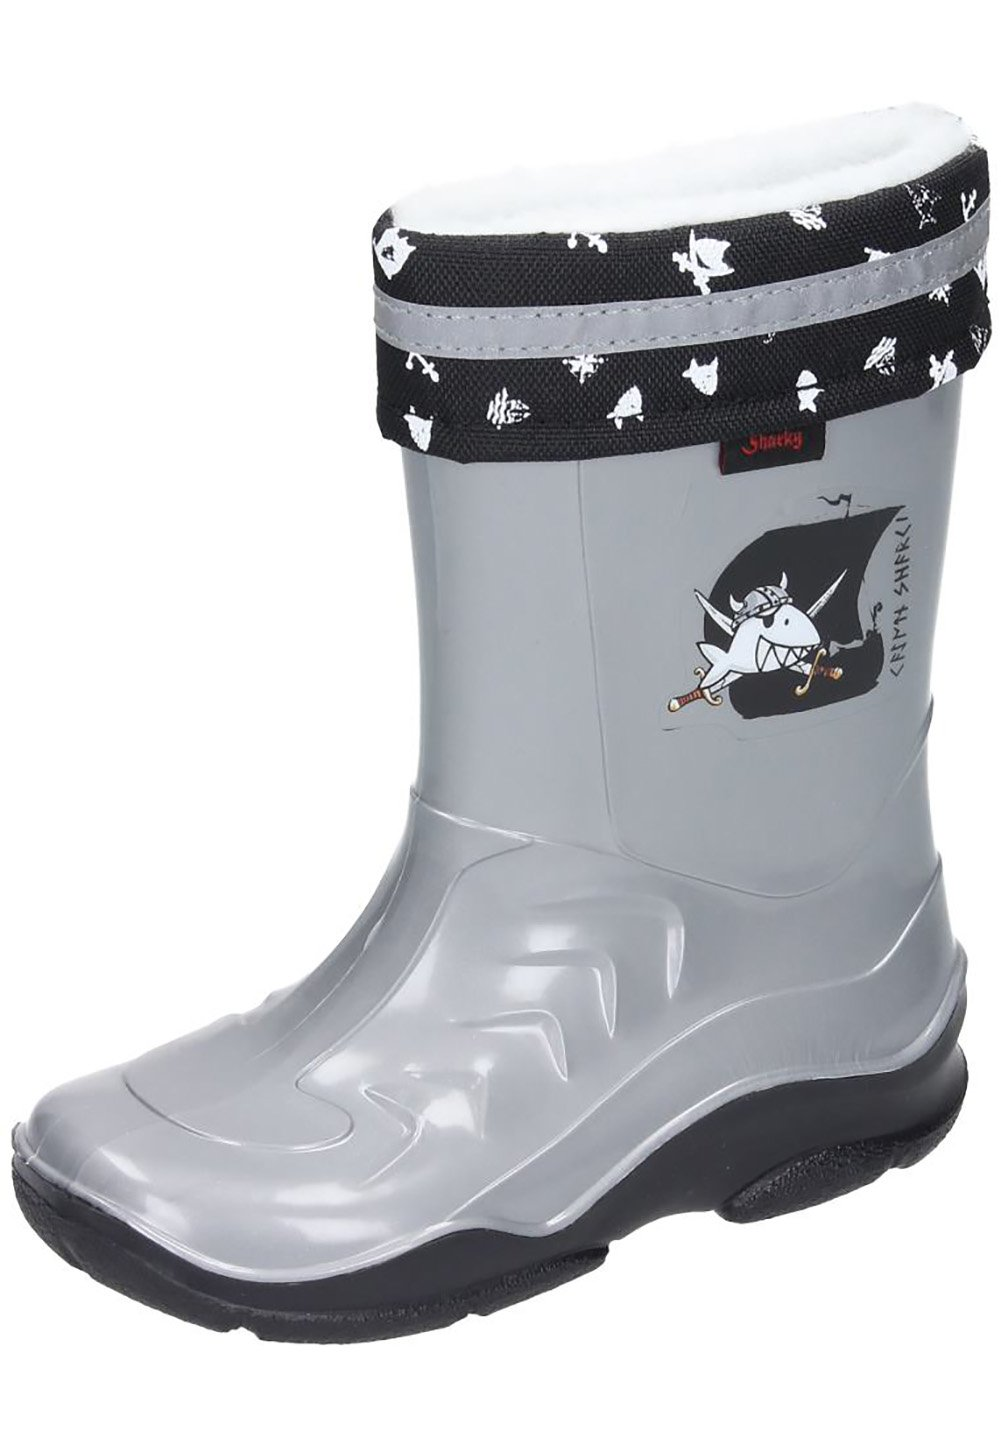 Captn Sharky Boys Warm Lining Boots Anthracite/Black Size 20 M US